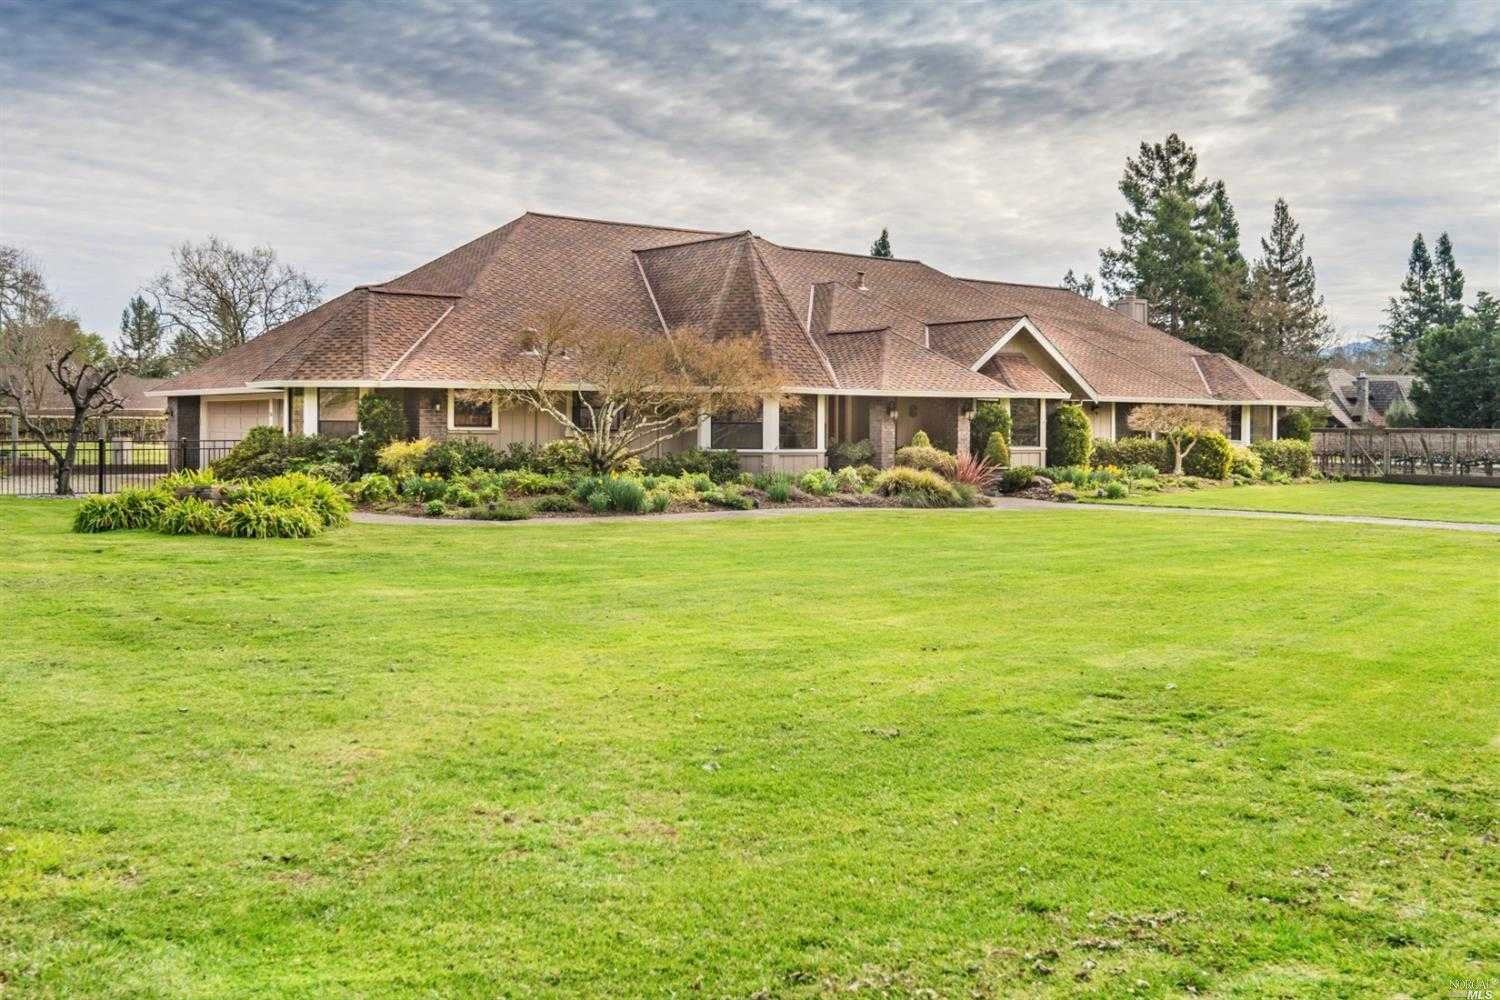 $2,298,000 - 4Br/4Ba -  for Sale in Santa Rosa